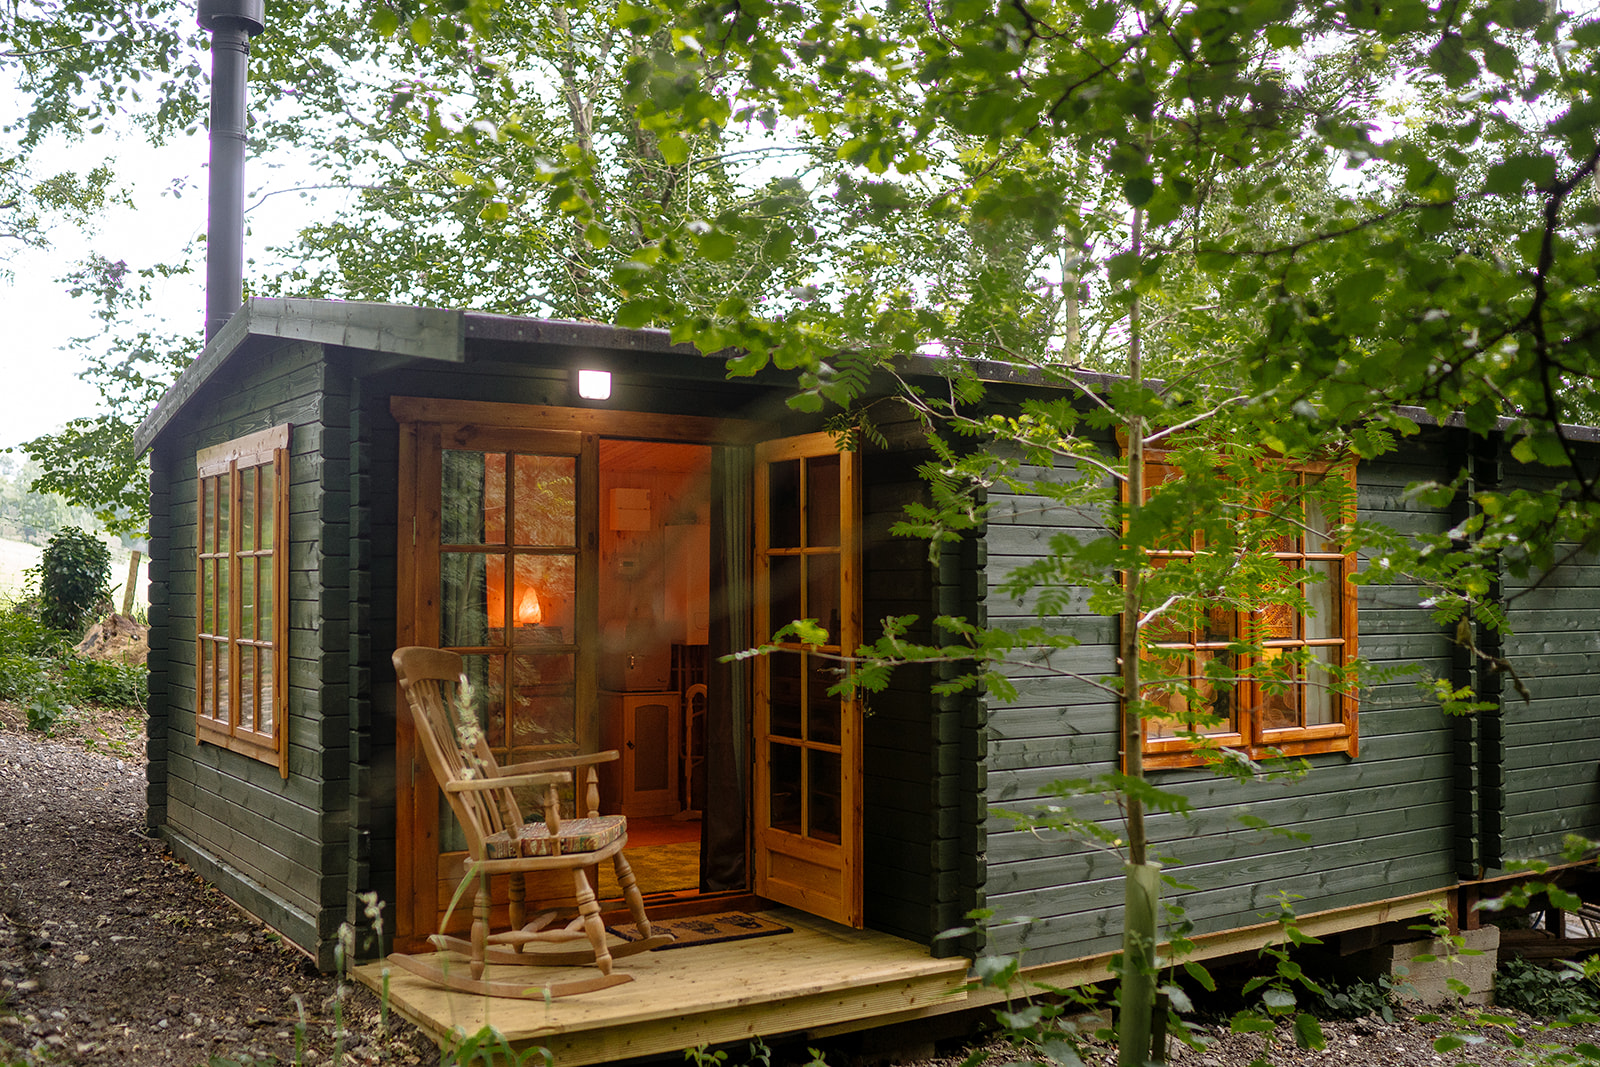 Our cabin, Woodland View.